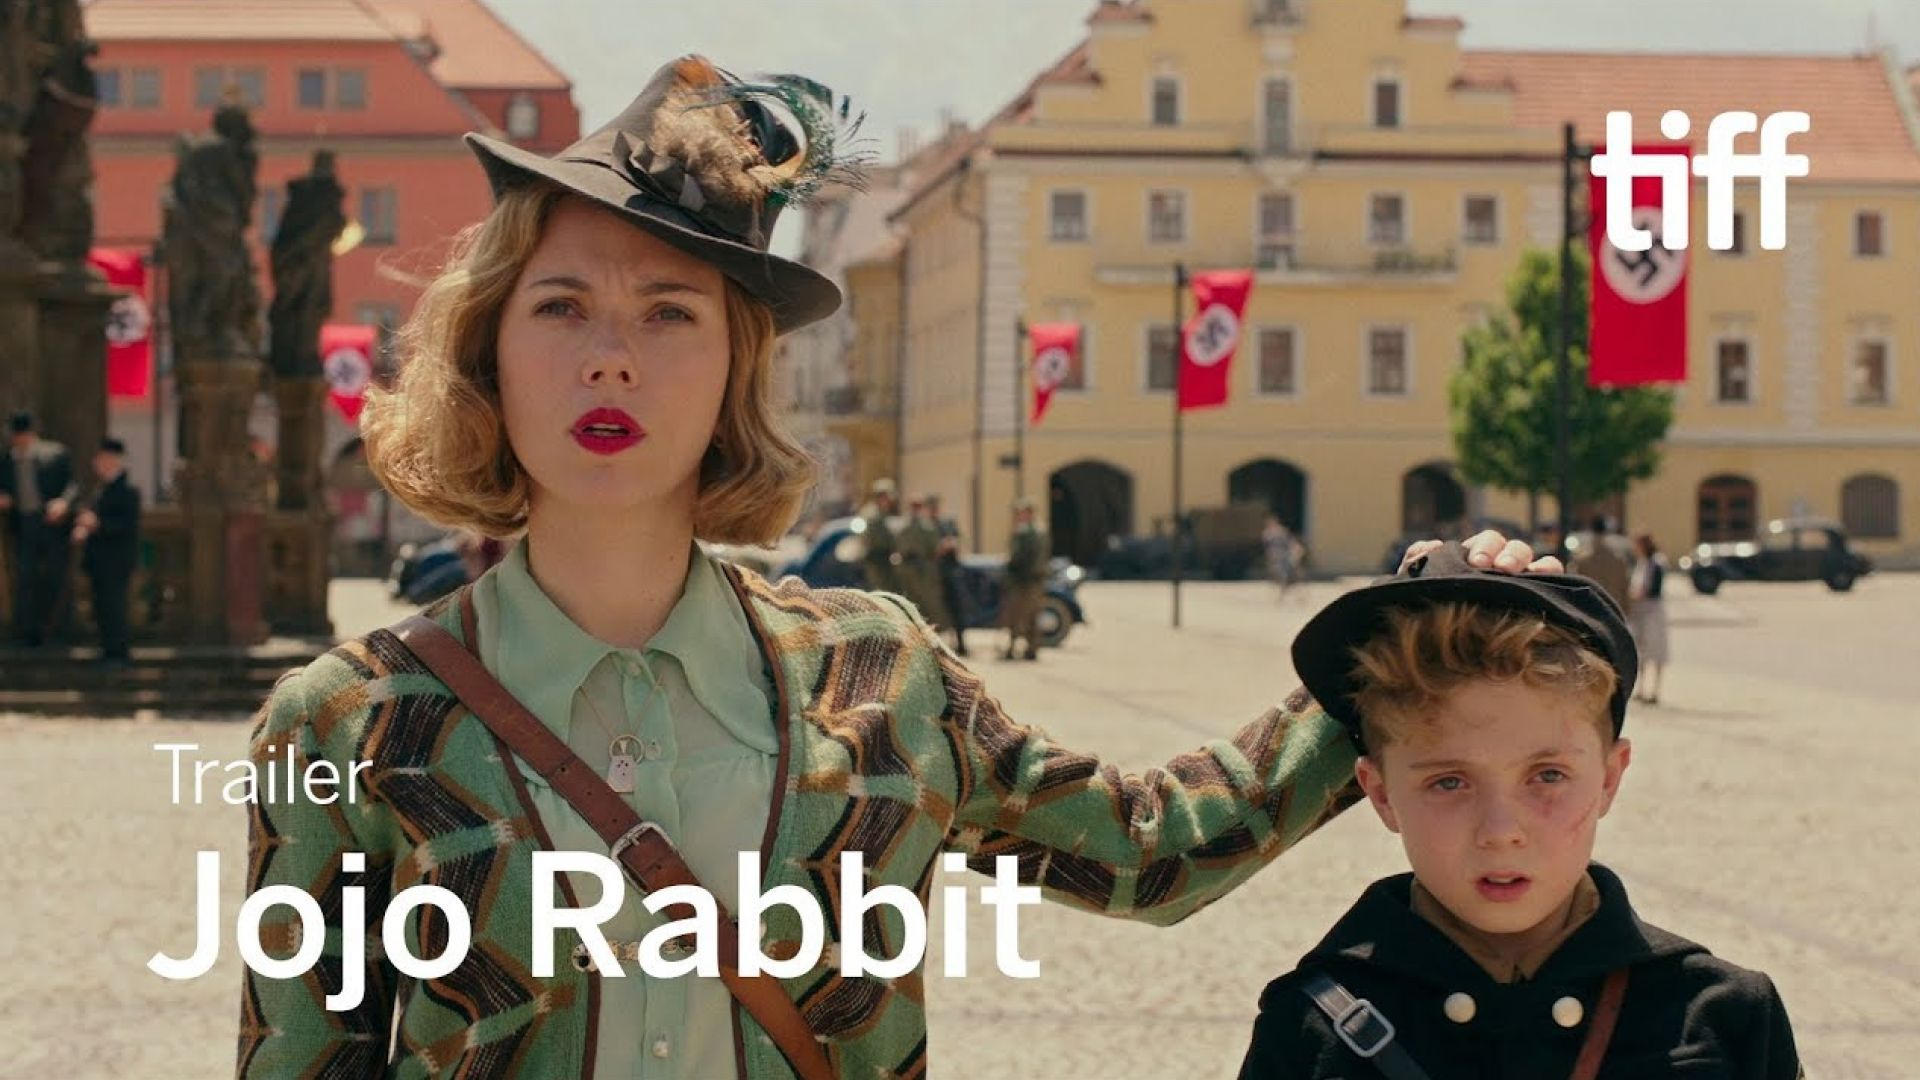 'Jojo Rabbit' trailer